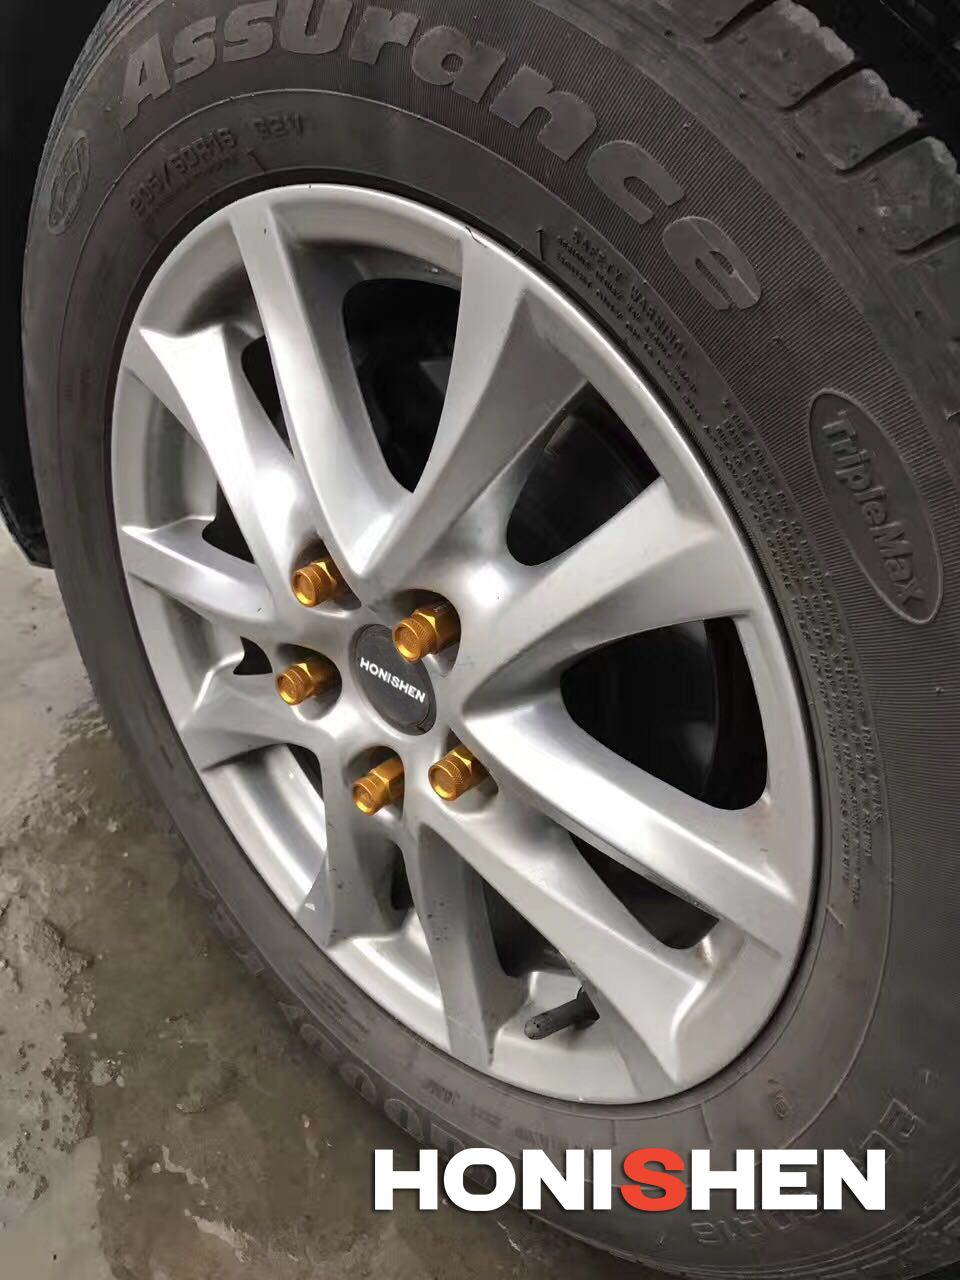 Most Popular Spike Car Wheel Nut These Bullet Like Caps Are Detachable And Made Of Premium Aluminium 7075 T6 Ultra Light And Anti Wheel Lock Wheel Stud Bolt